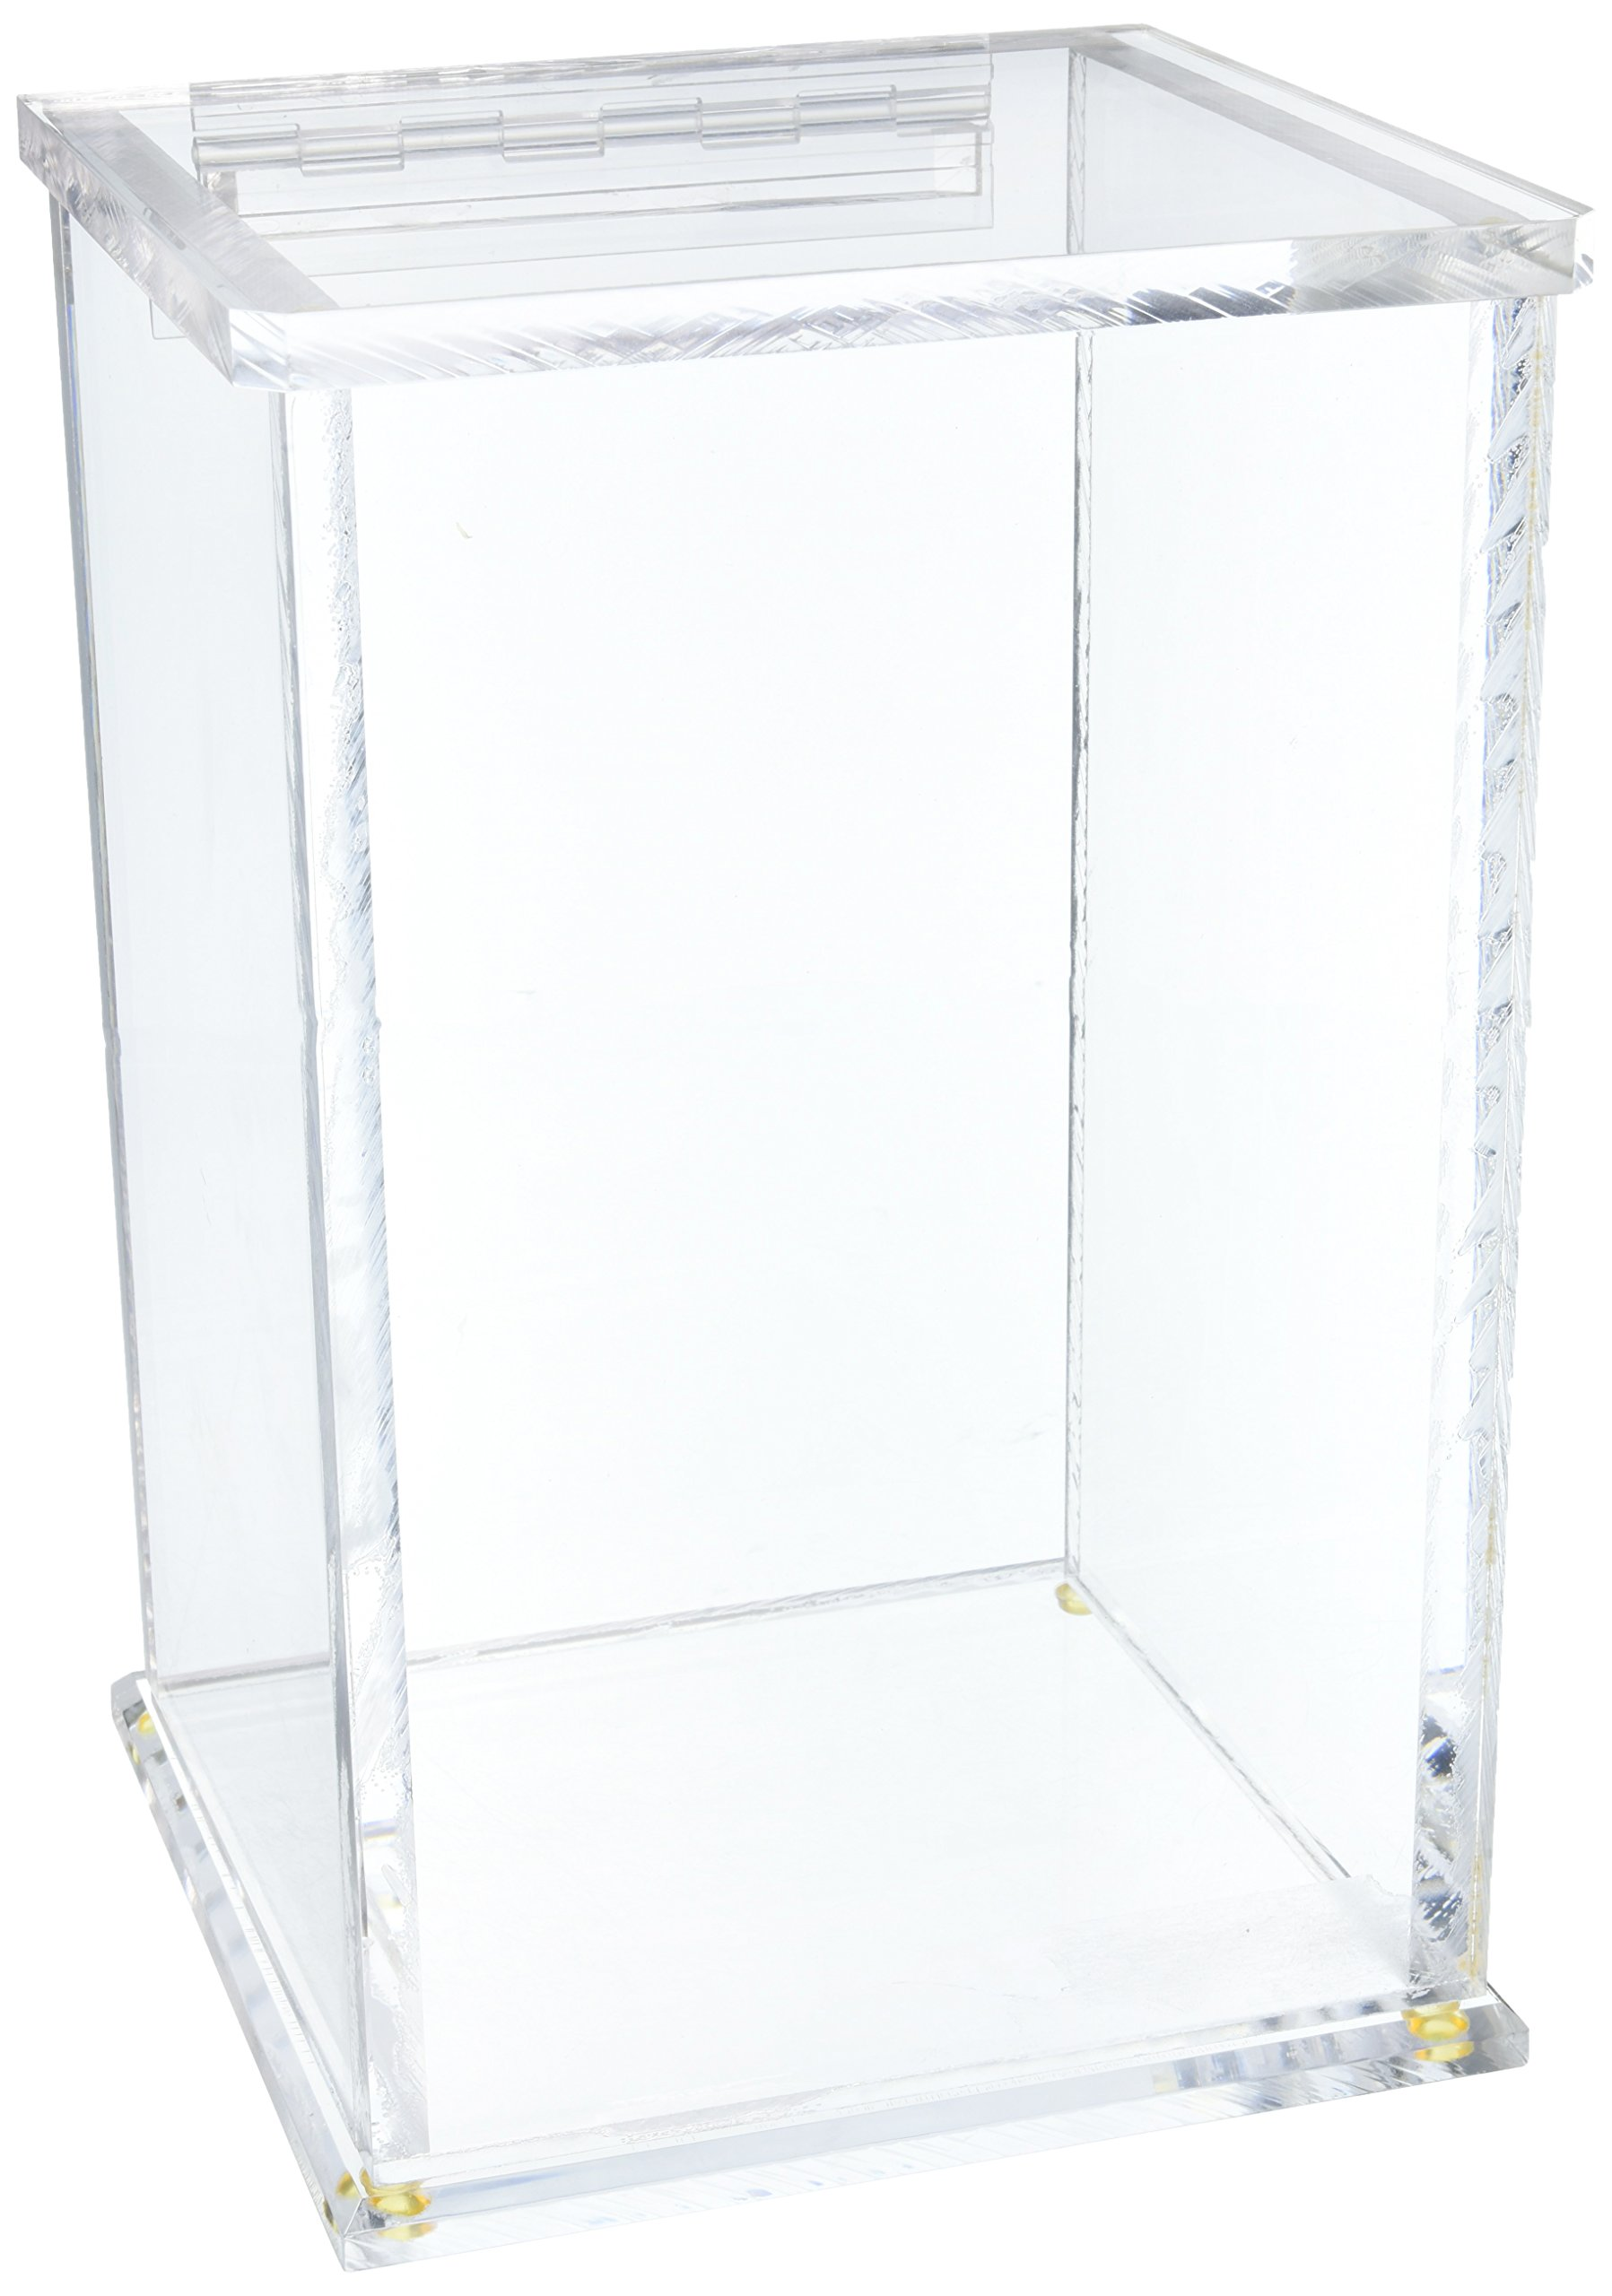 IBI Scientific WH-80 Beta-Gard Acrylic 1Gallon Jug Waste Container with Hinged Lid, 8-3/4'' Width x 13-1/4'' Height x 8-3/4'' Depth by Mighty Line